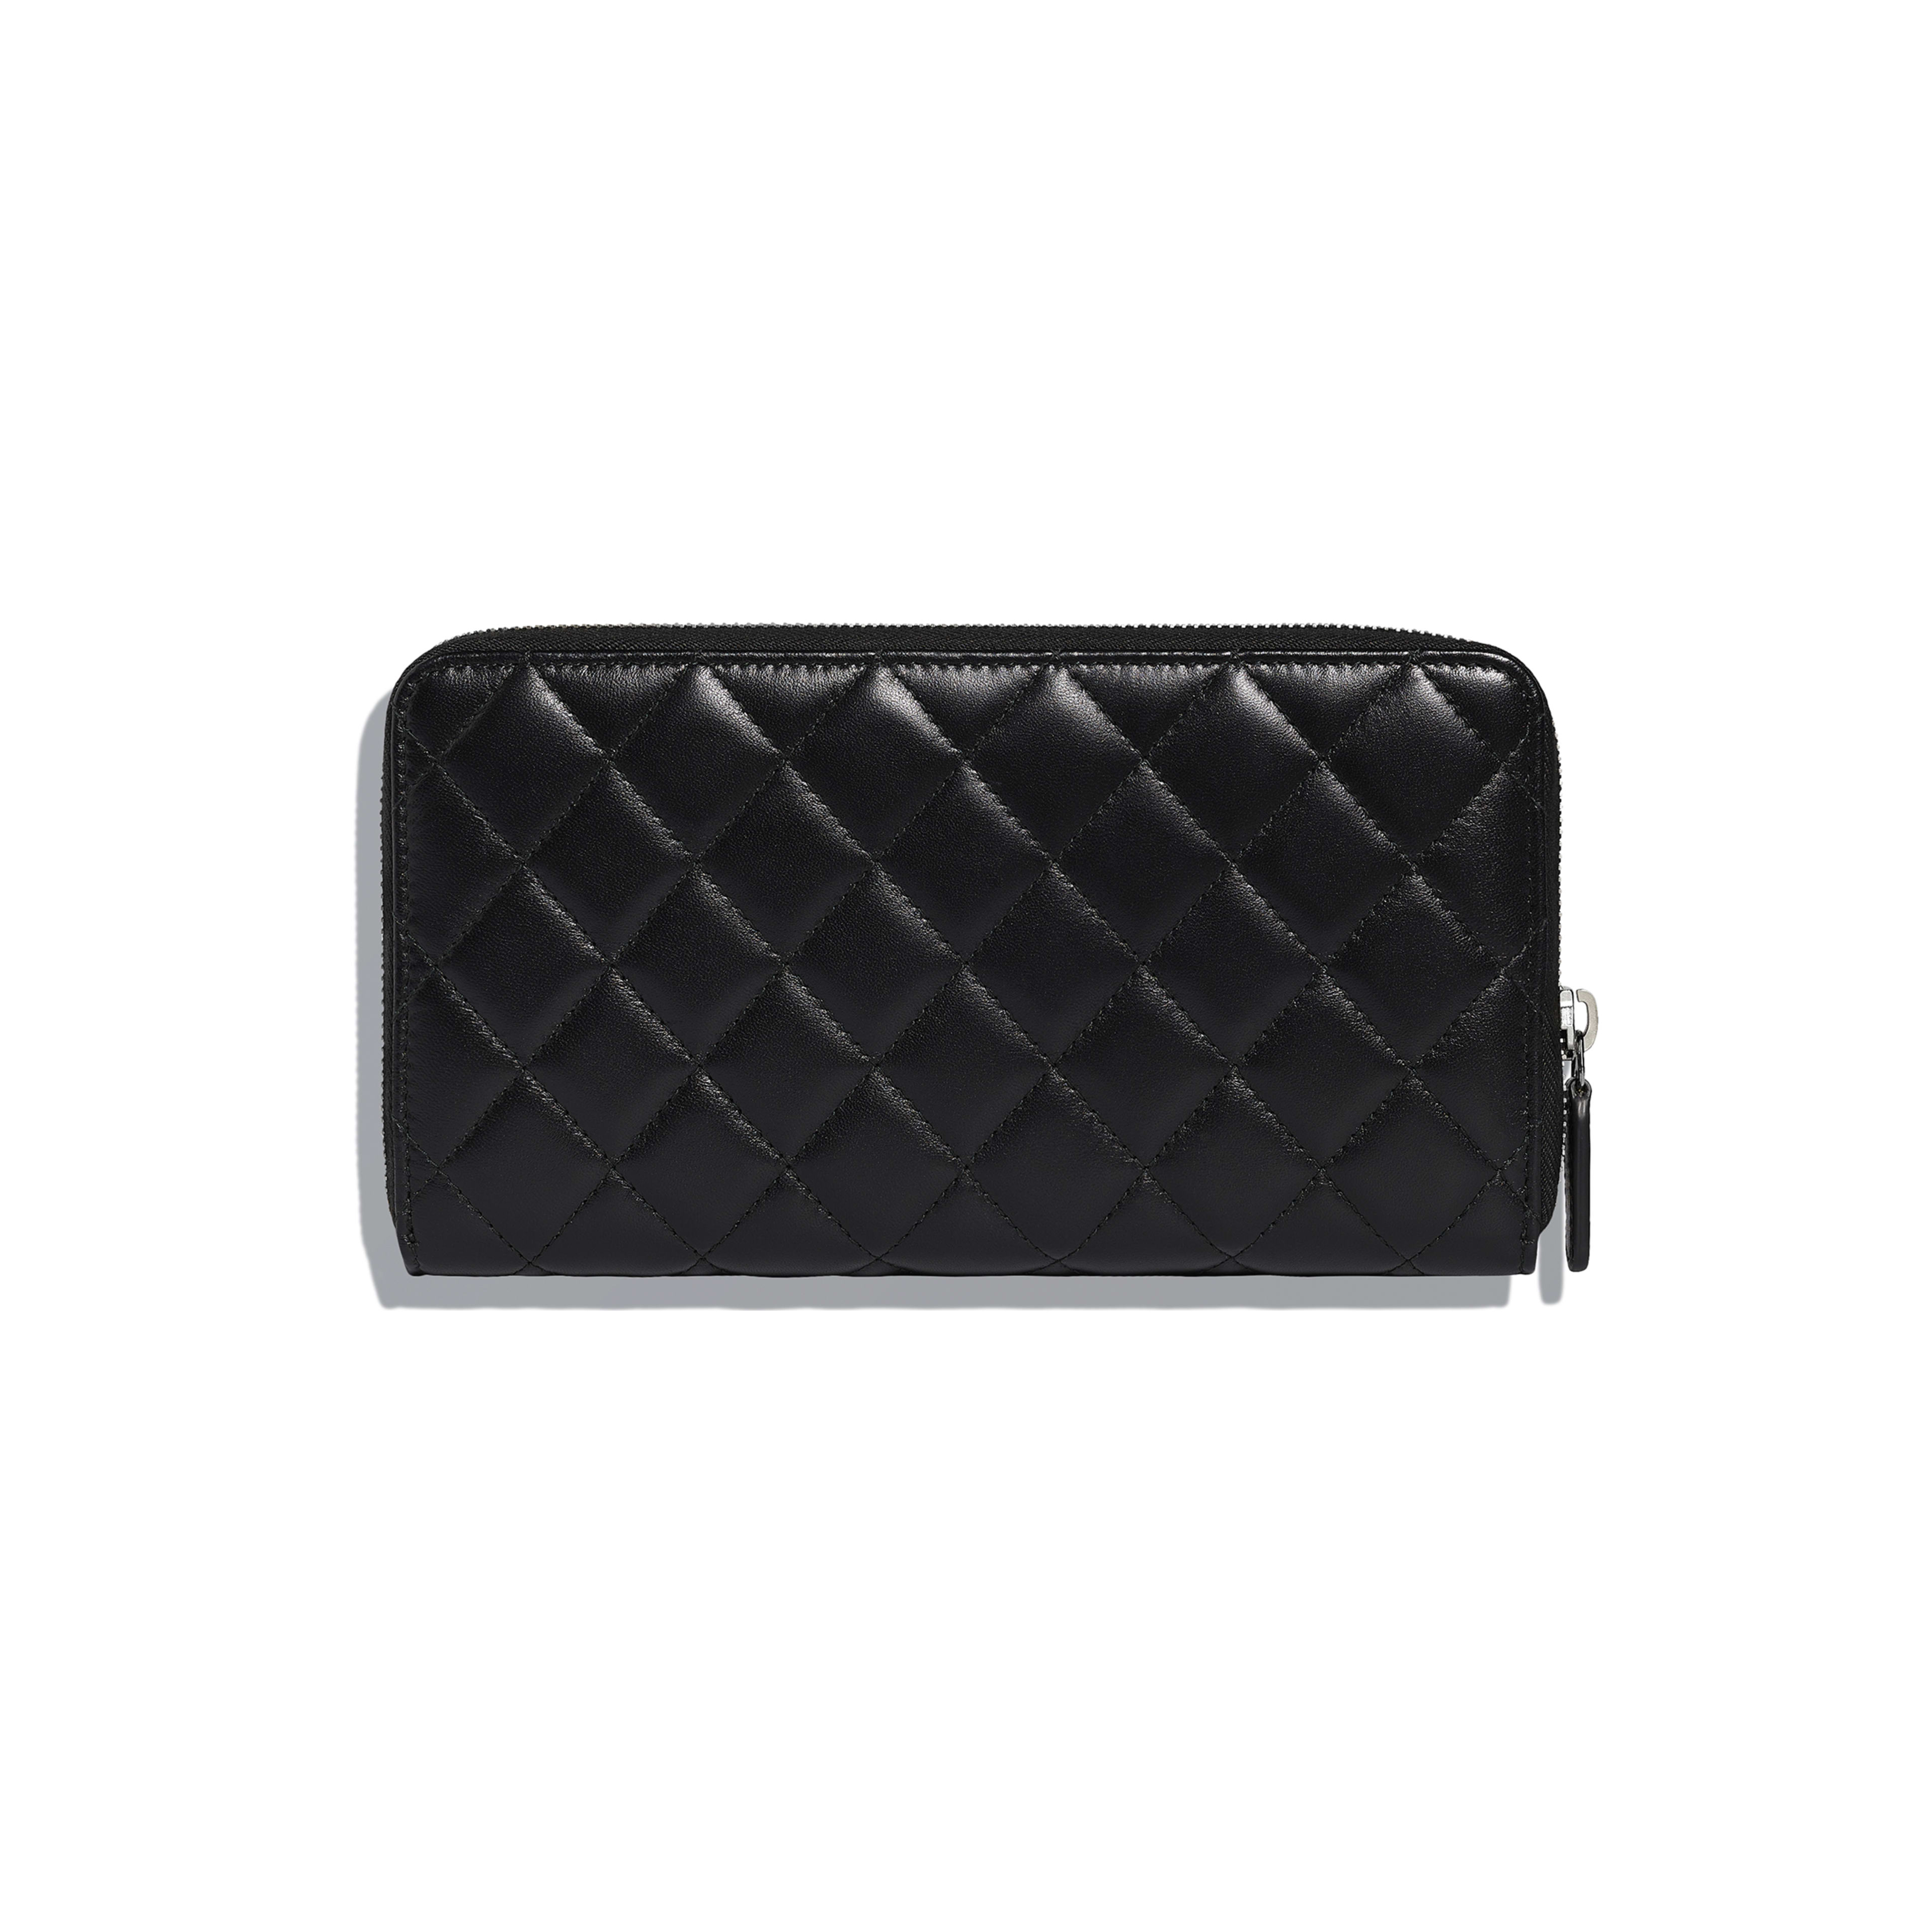 Classic Large Zipped Wallet - Black - Lambskin - Alternative view - see full sized version